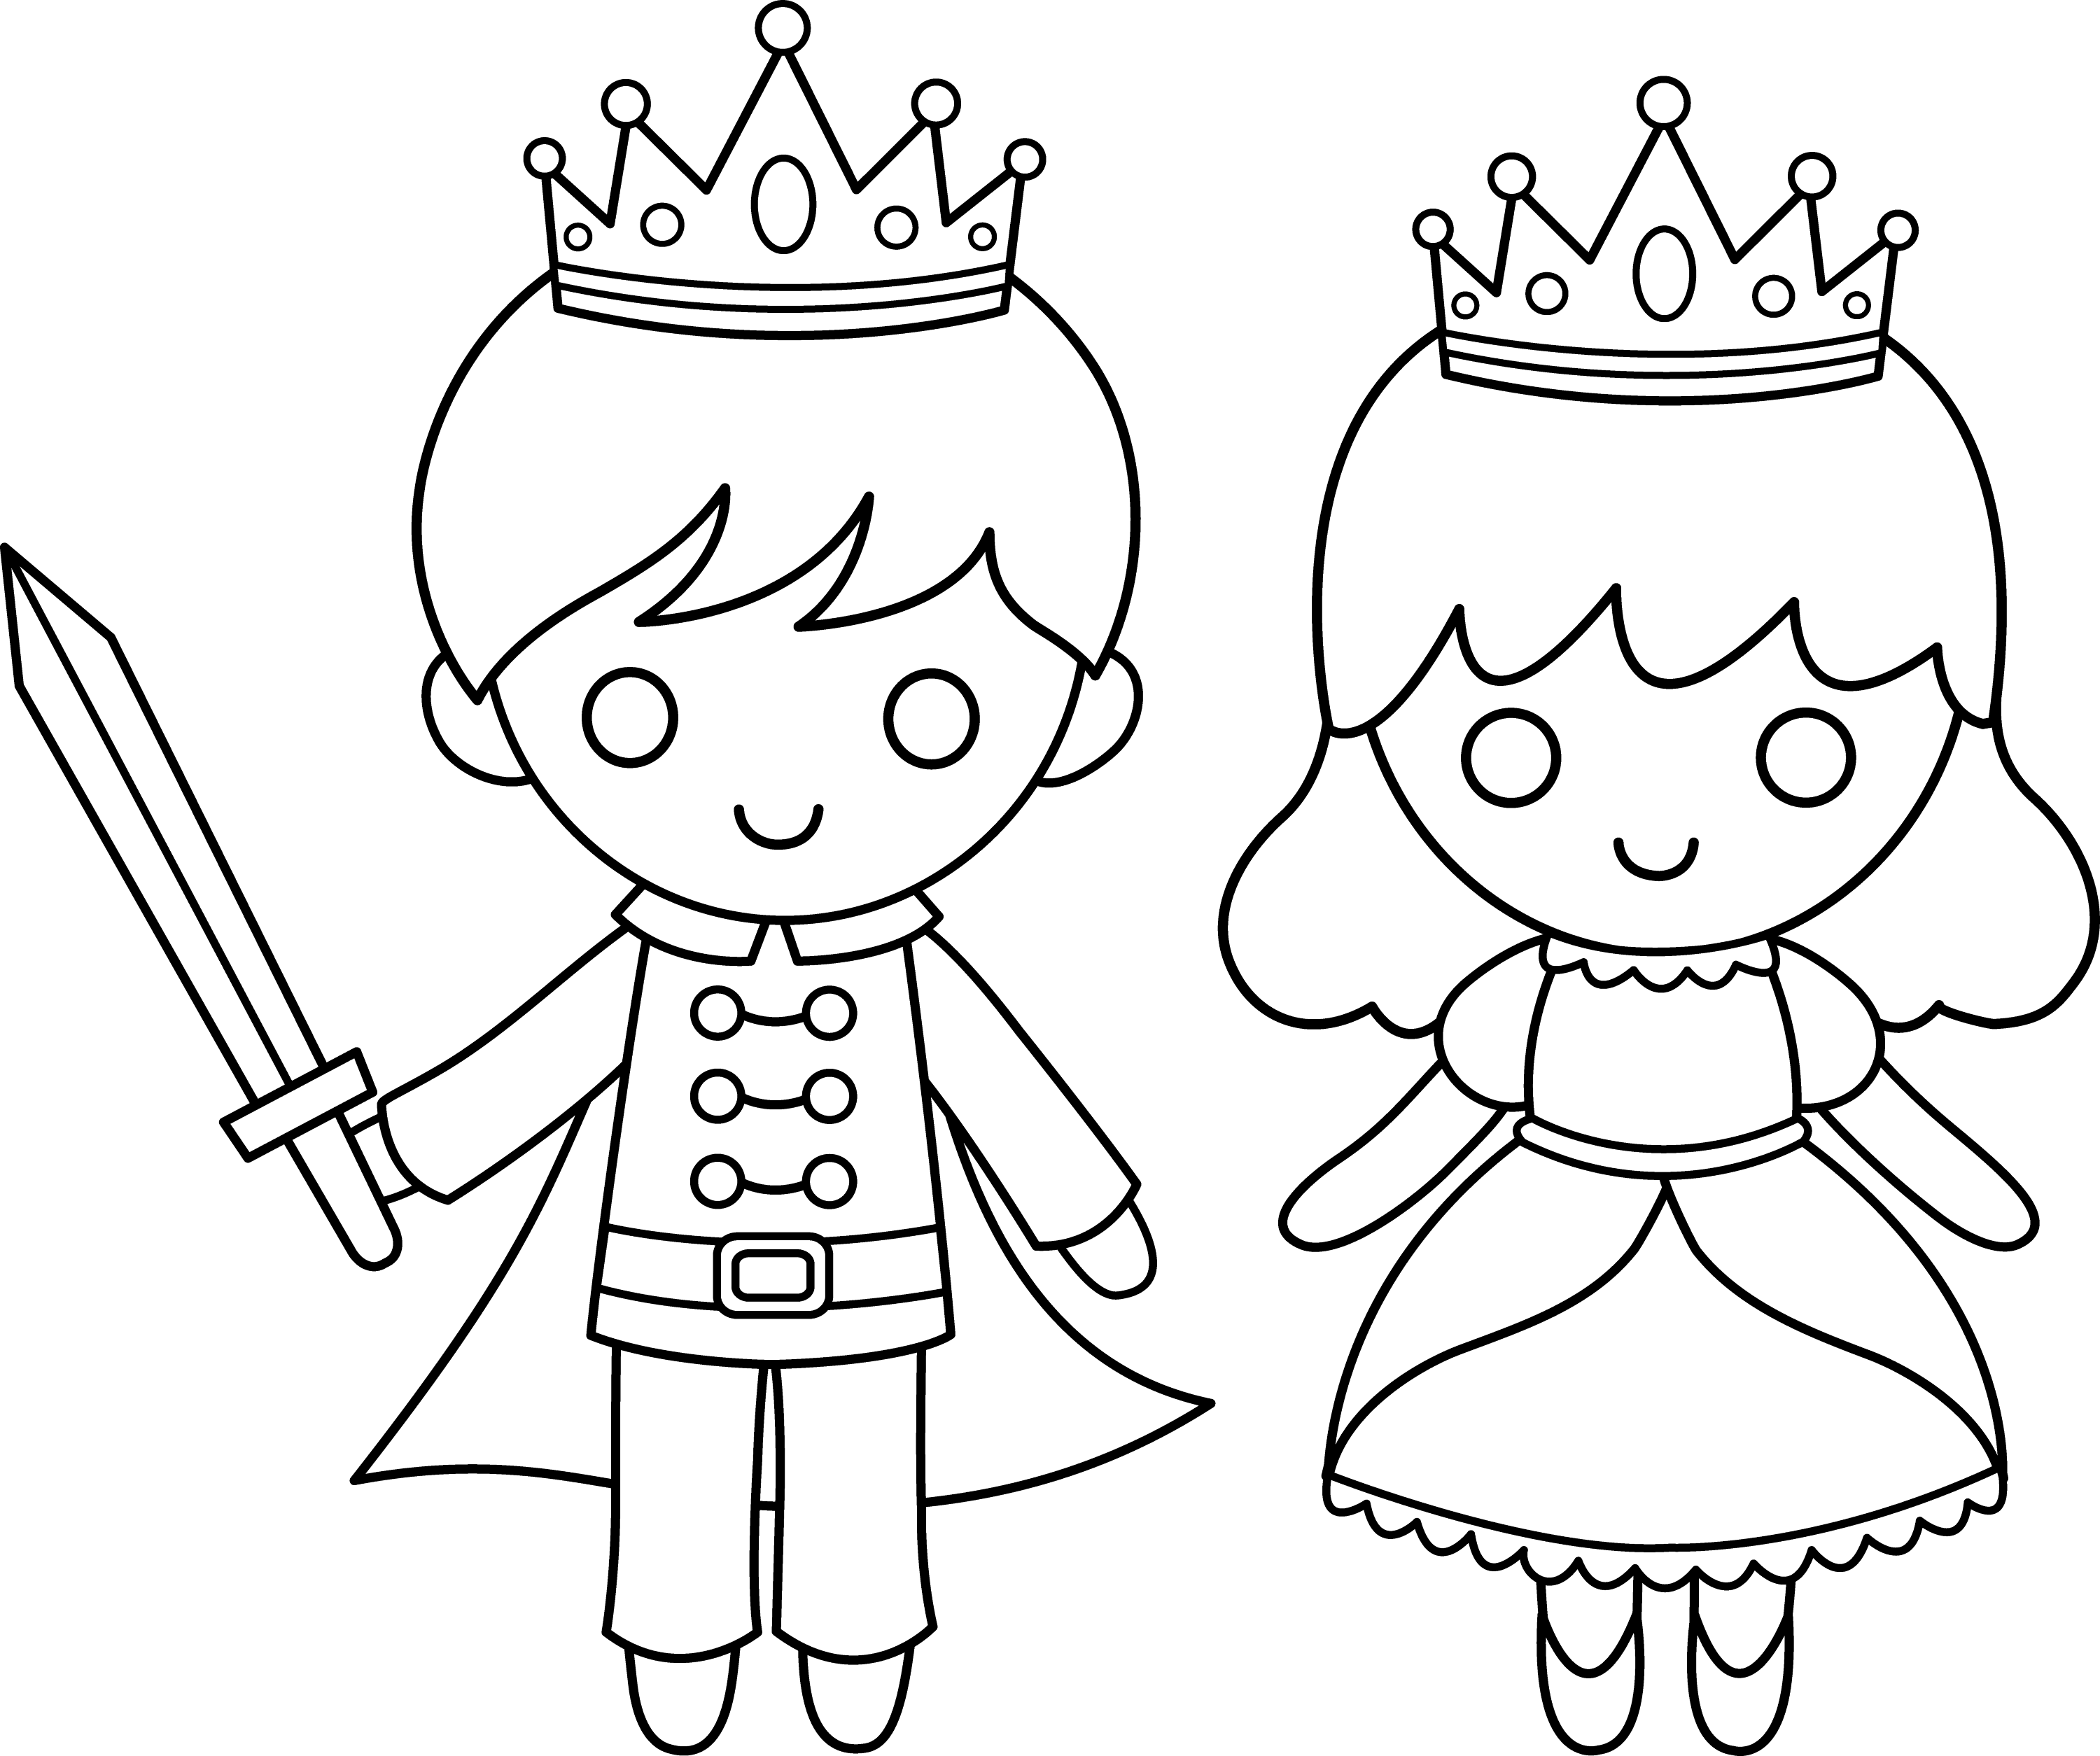 Prince And Princess Line Art Free Clip Art Prince And Princess Coloring Page Free Coloring Sheets